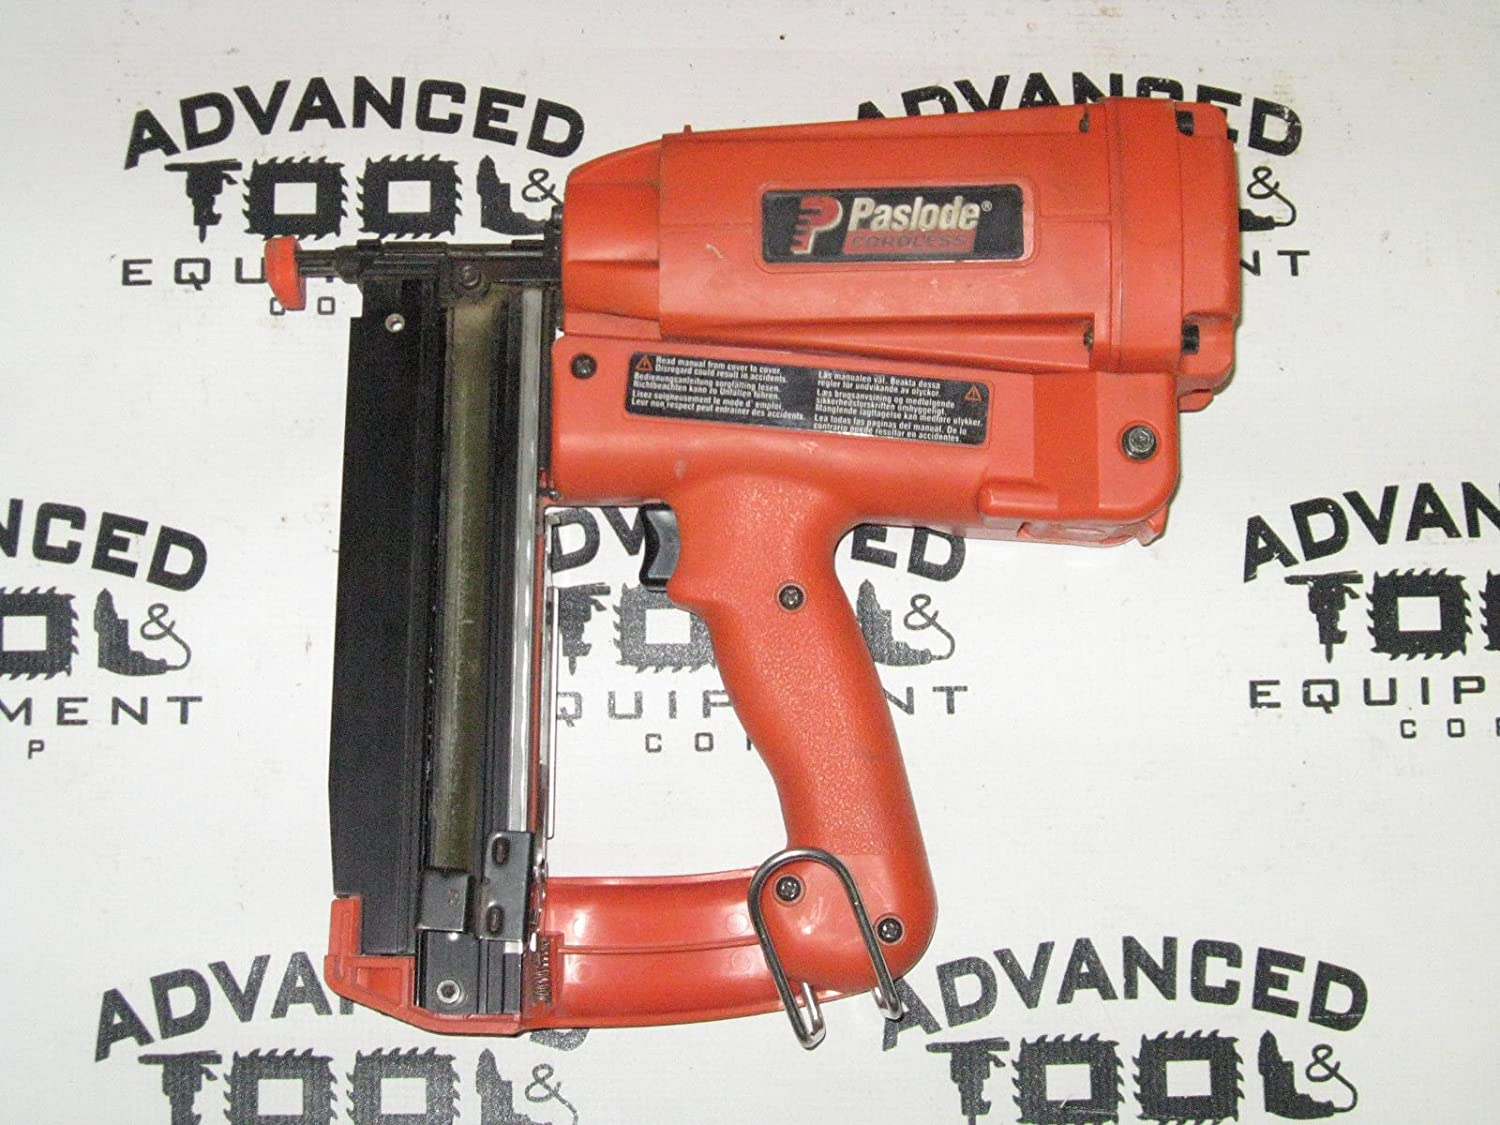 100+ Nail Gun 16 Gauge - Hitachi Nt65gs 16 Gauge Cordless Gas ...